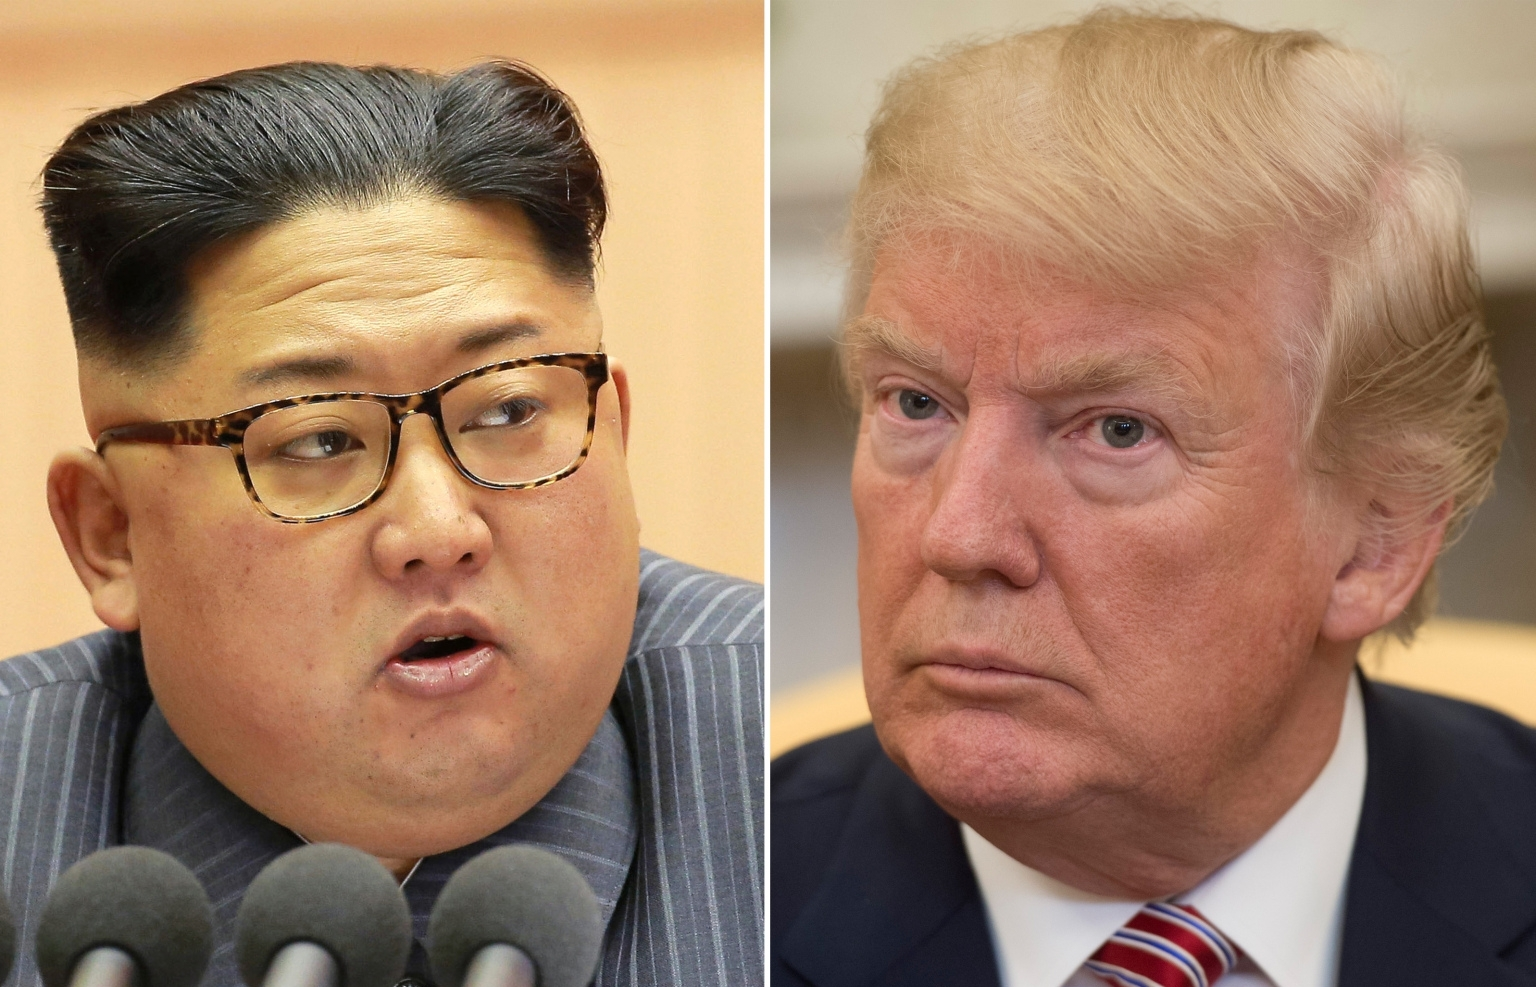 Trump dangles White House invite for Kim – if Singapore summit goes well